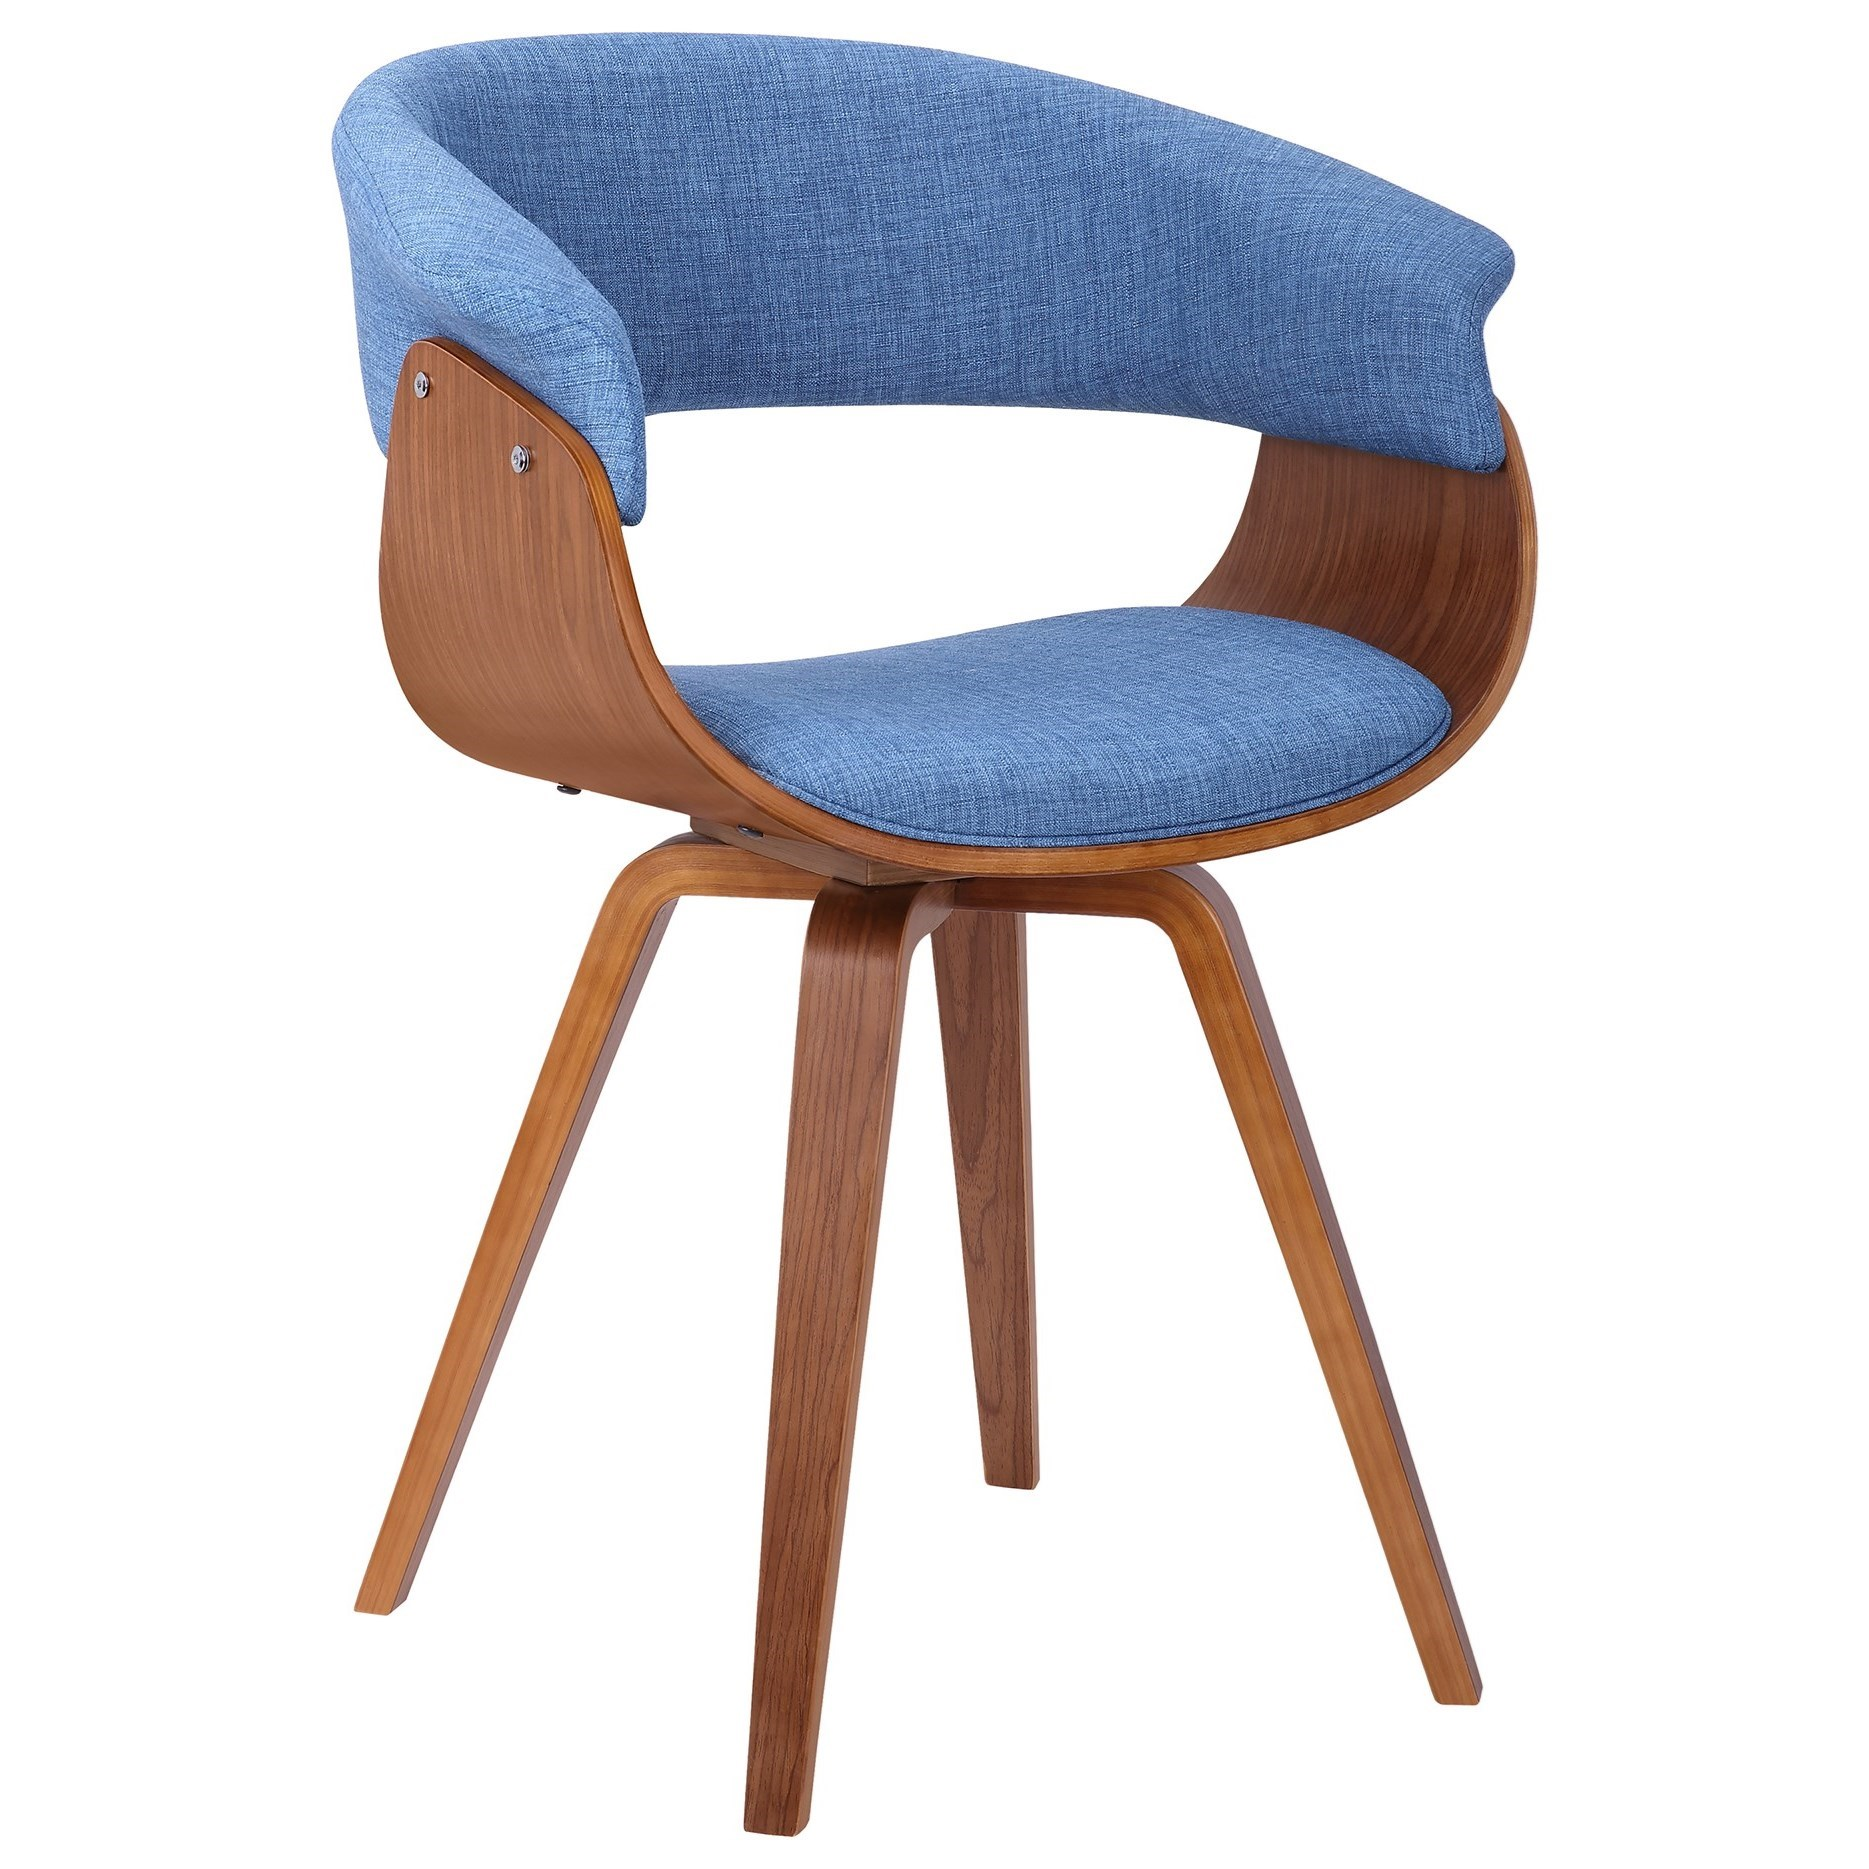 Summer Mid-Century Chair in Blue Fabric at Sadler's Home Furnishings